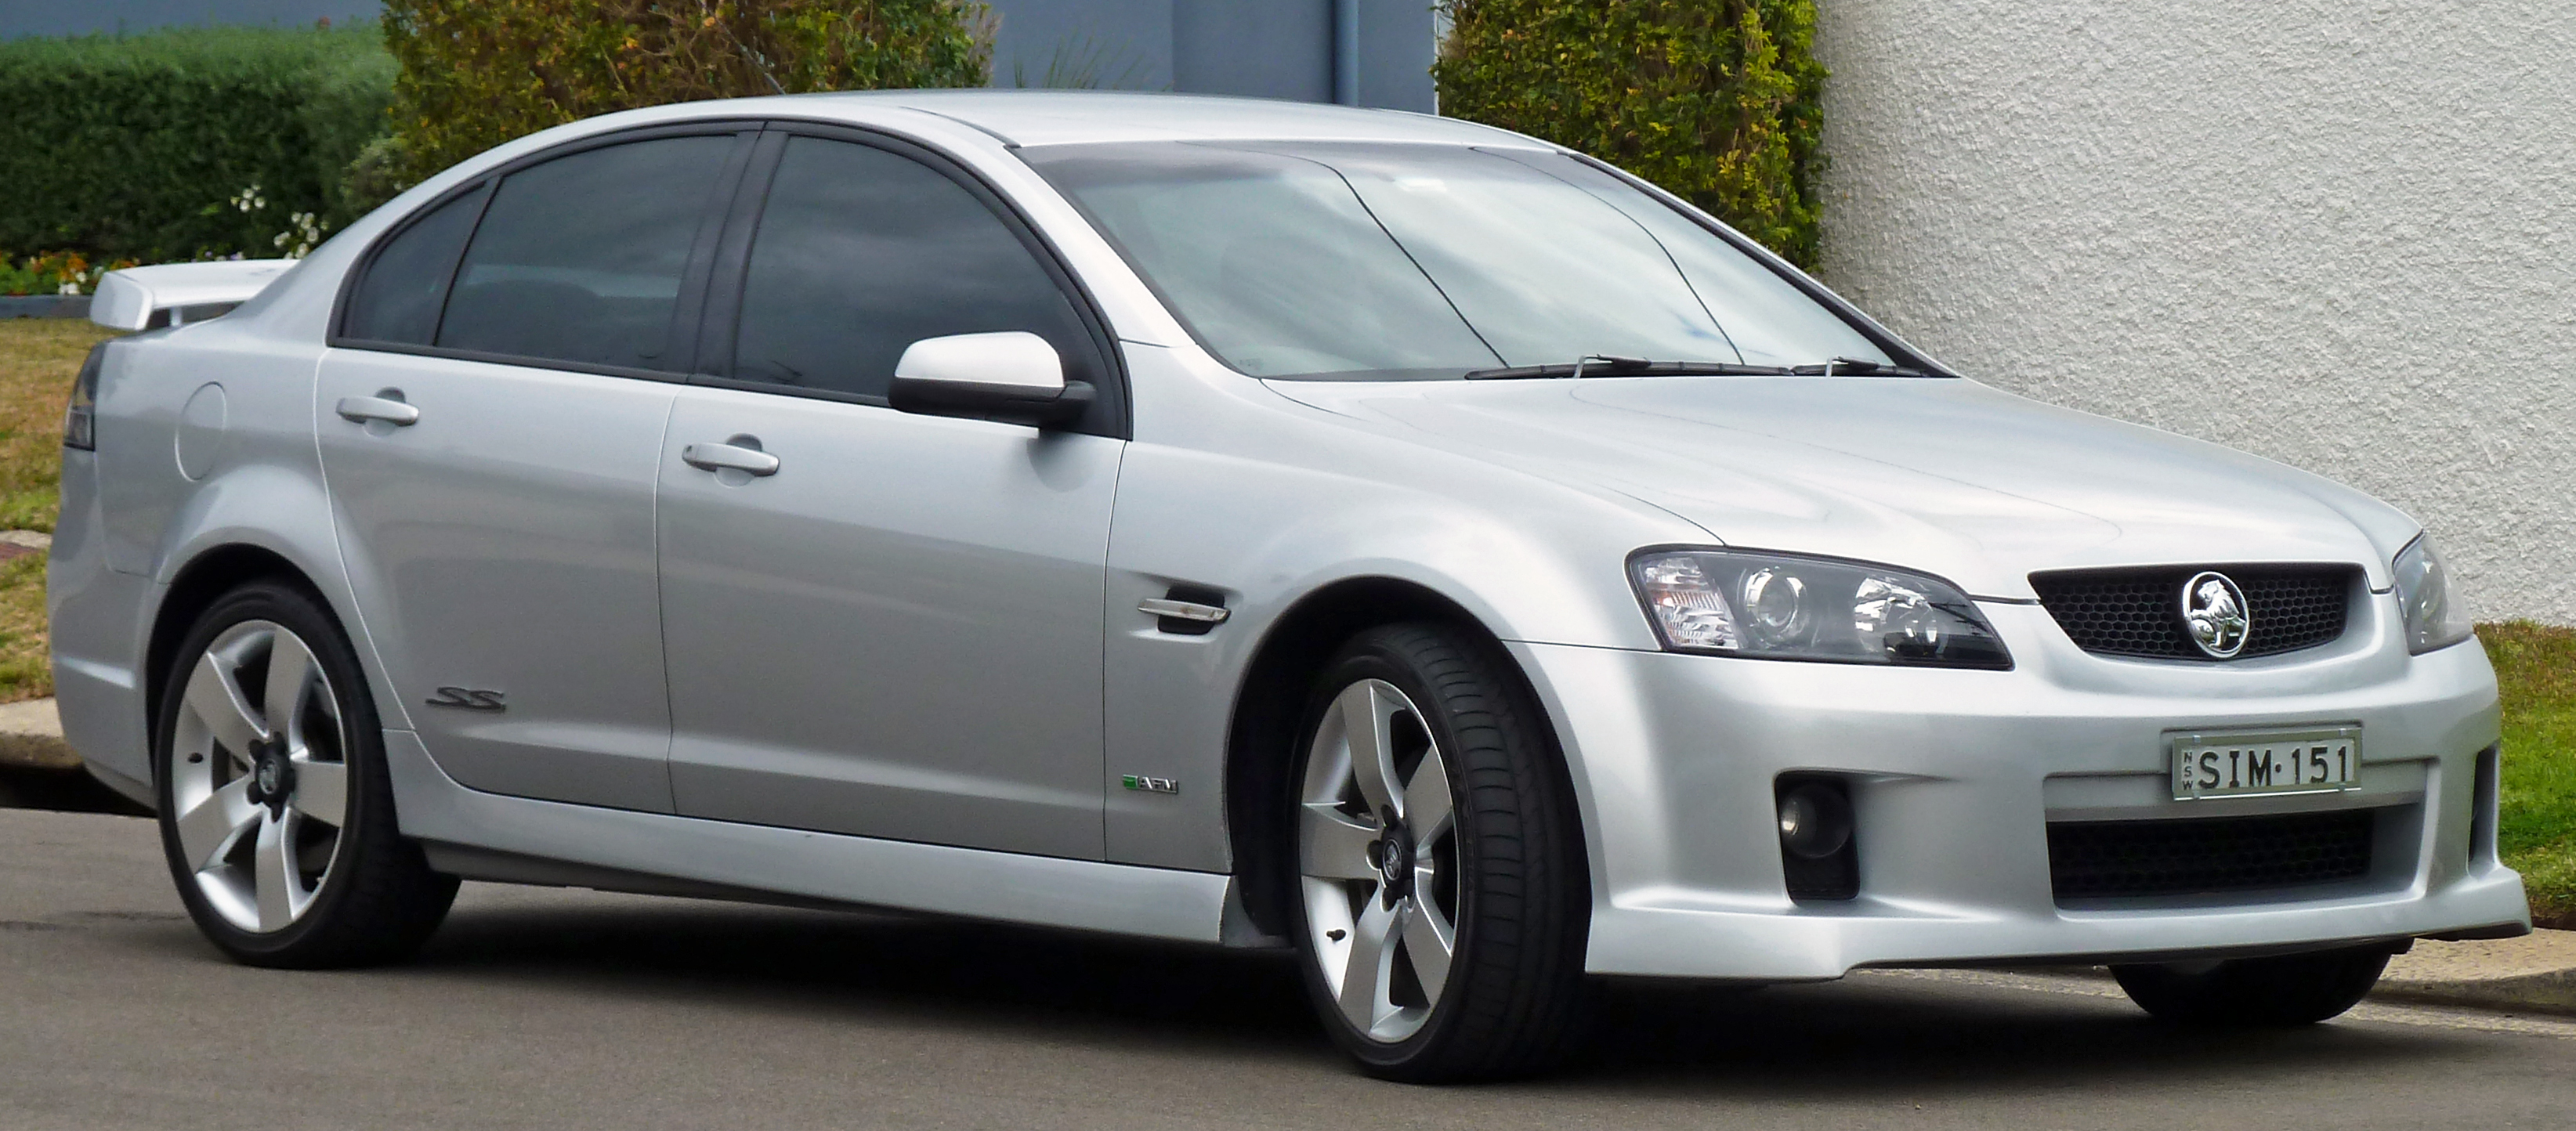 Cars holden commodore (vt) 2010 #9